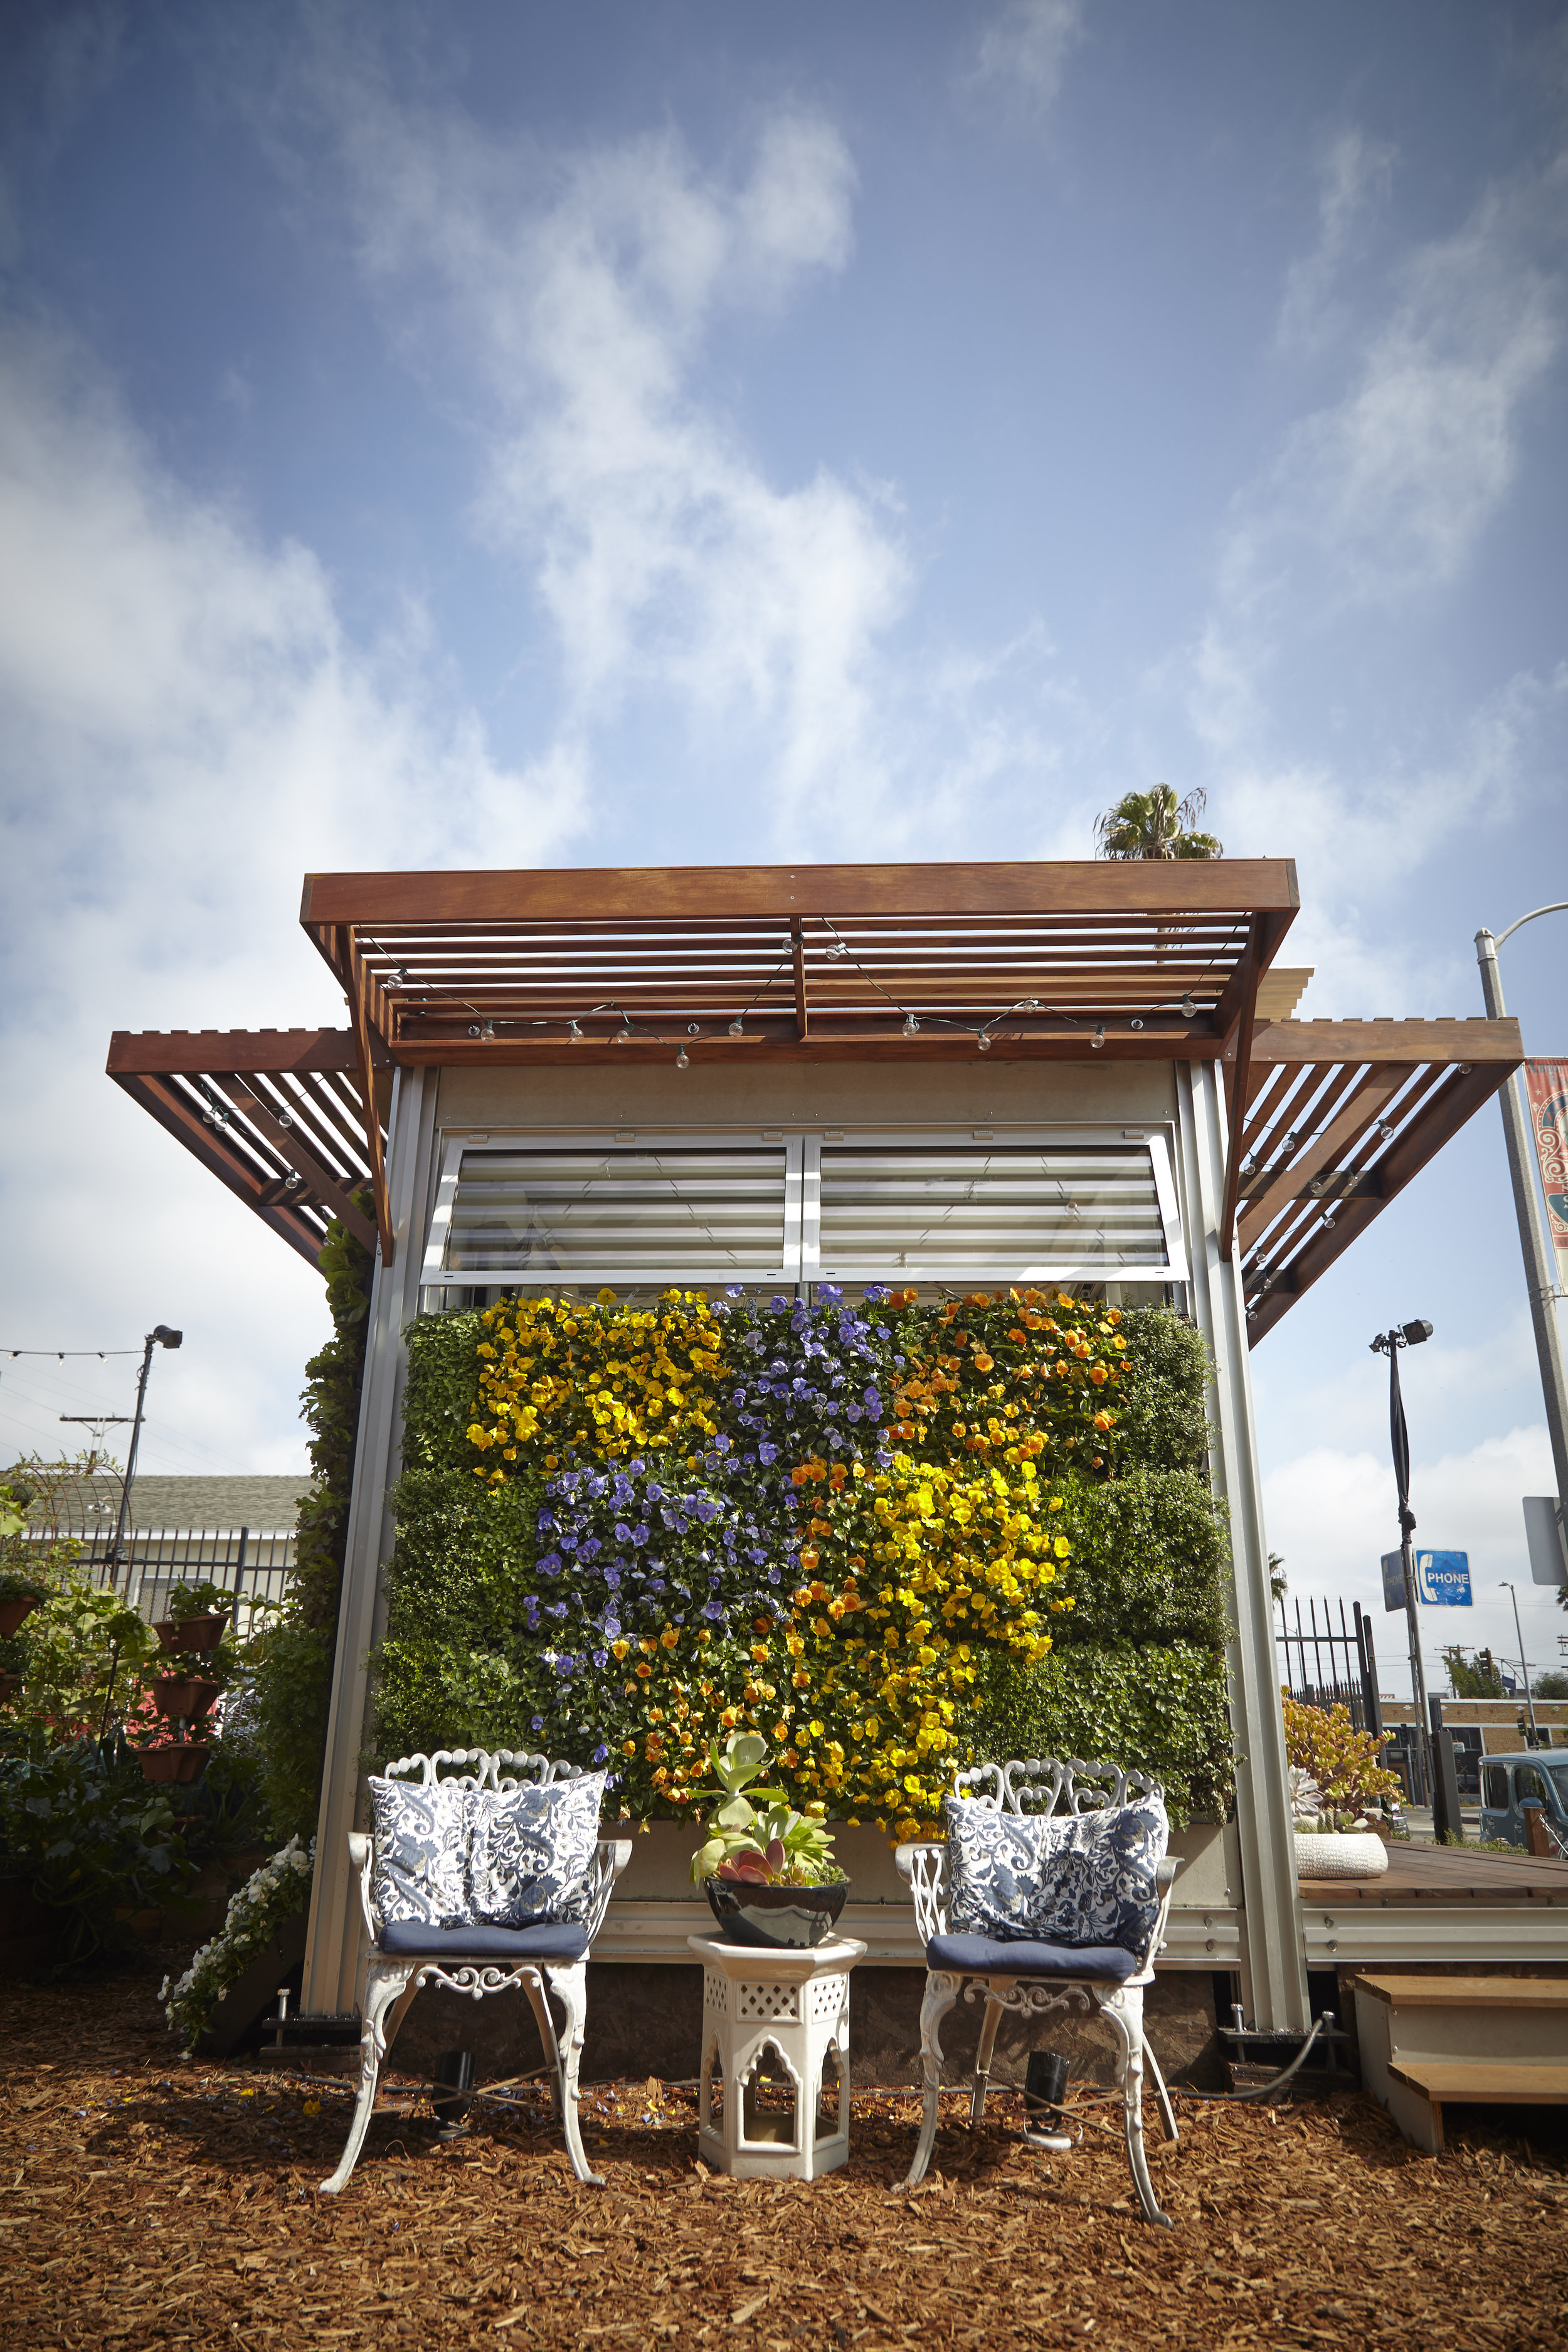 S.E.A.-Studio-Environmental-Architecture-David-Hertz-FAIA-Airbnb-Ecopod-Venice-Beach-California-sustainable-regenerative-restorative-green-design-passive-systems-natural-ventilation-radiant-solar-panels-greenwall-installation-Abbot-Kinney-modern-6.jpg